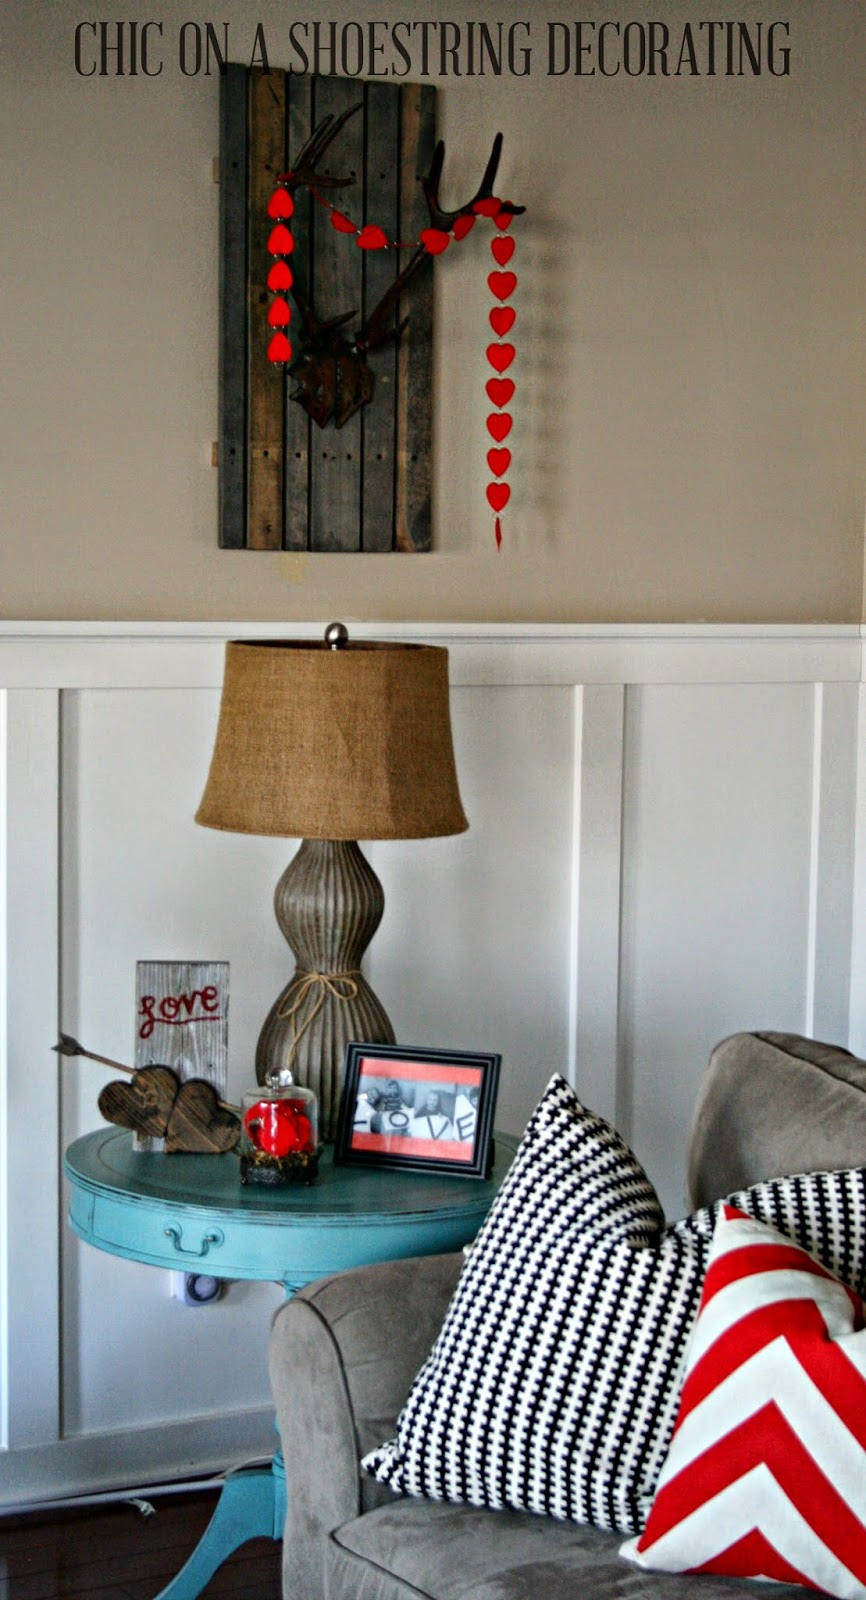 Rustic Chic Valentines Day decor by Chic on a Shoestring Decorating blog